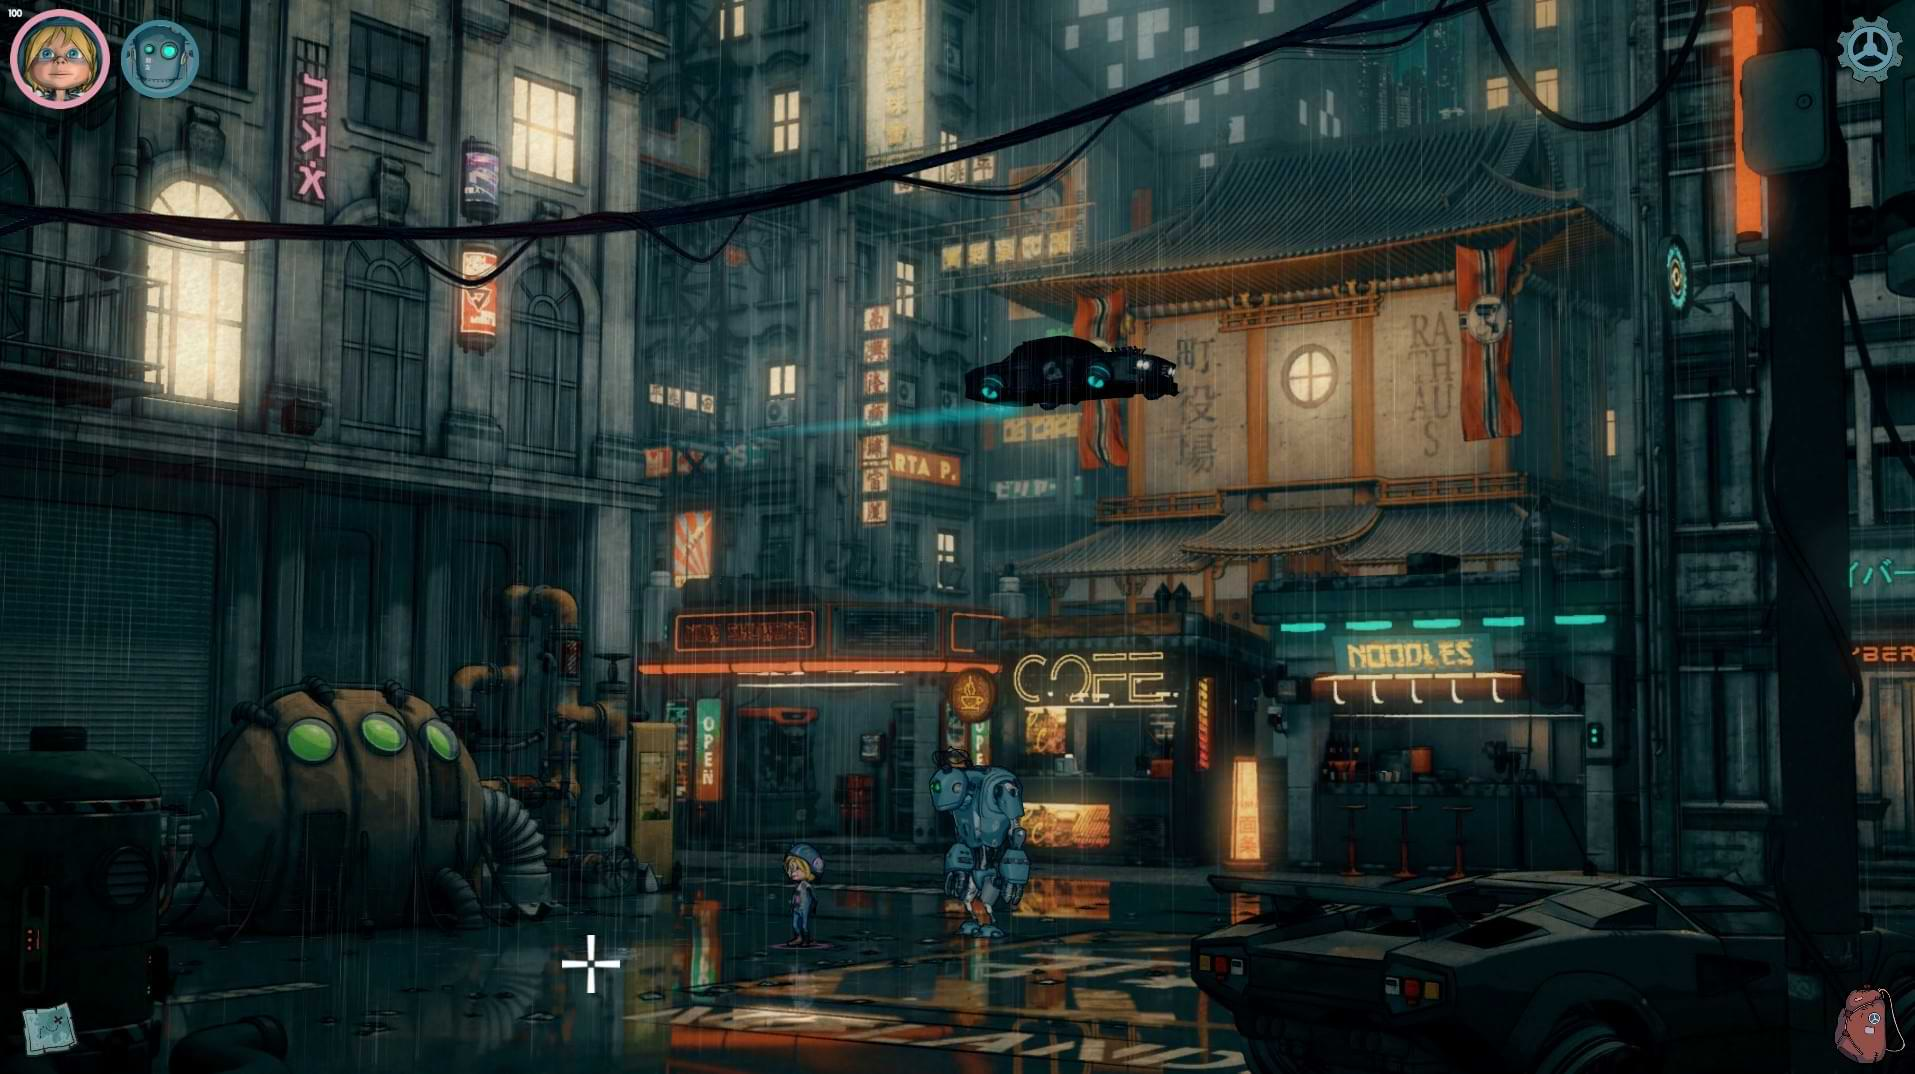 Encodya cyberpunk point and click out this month